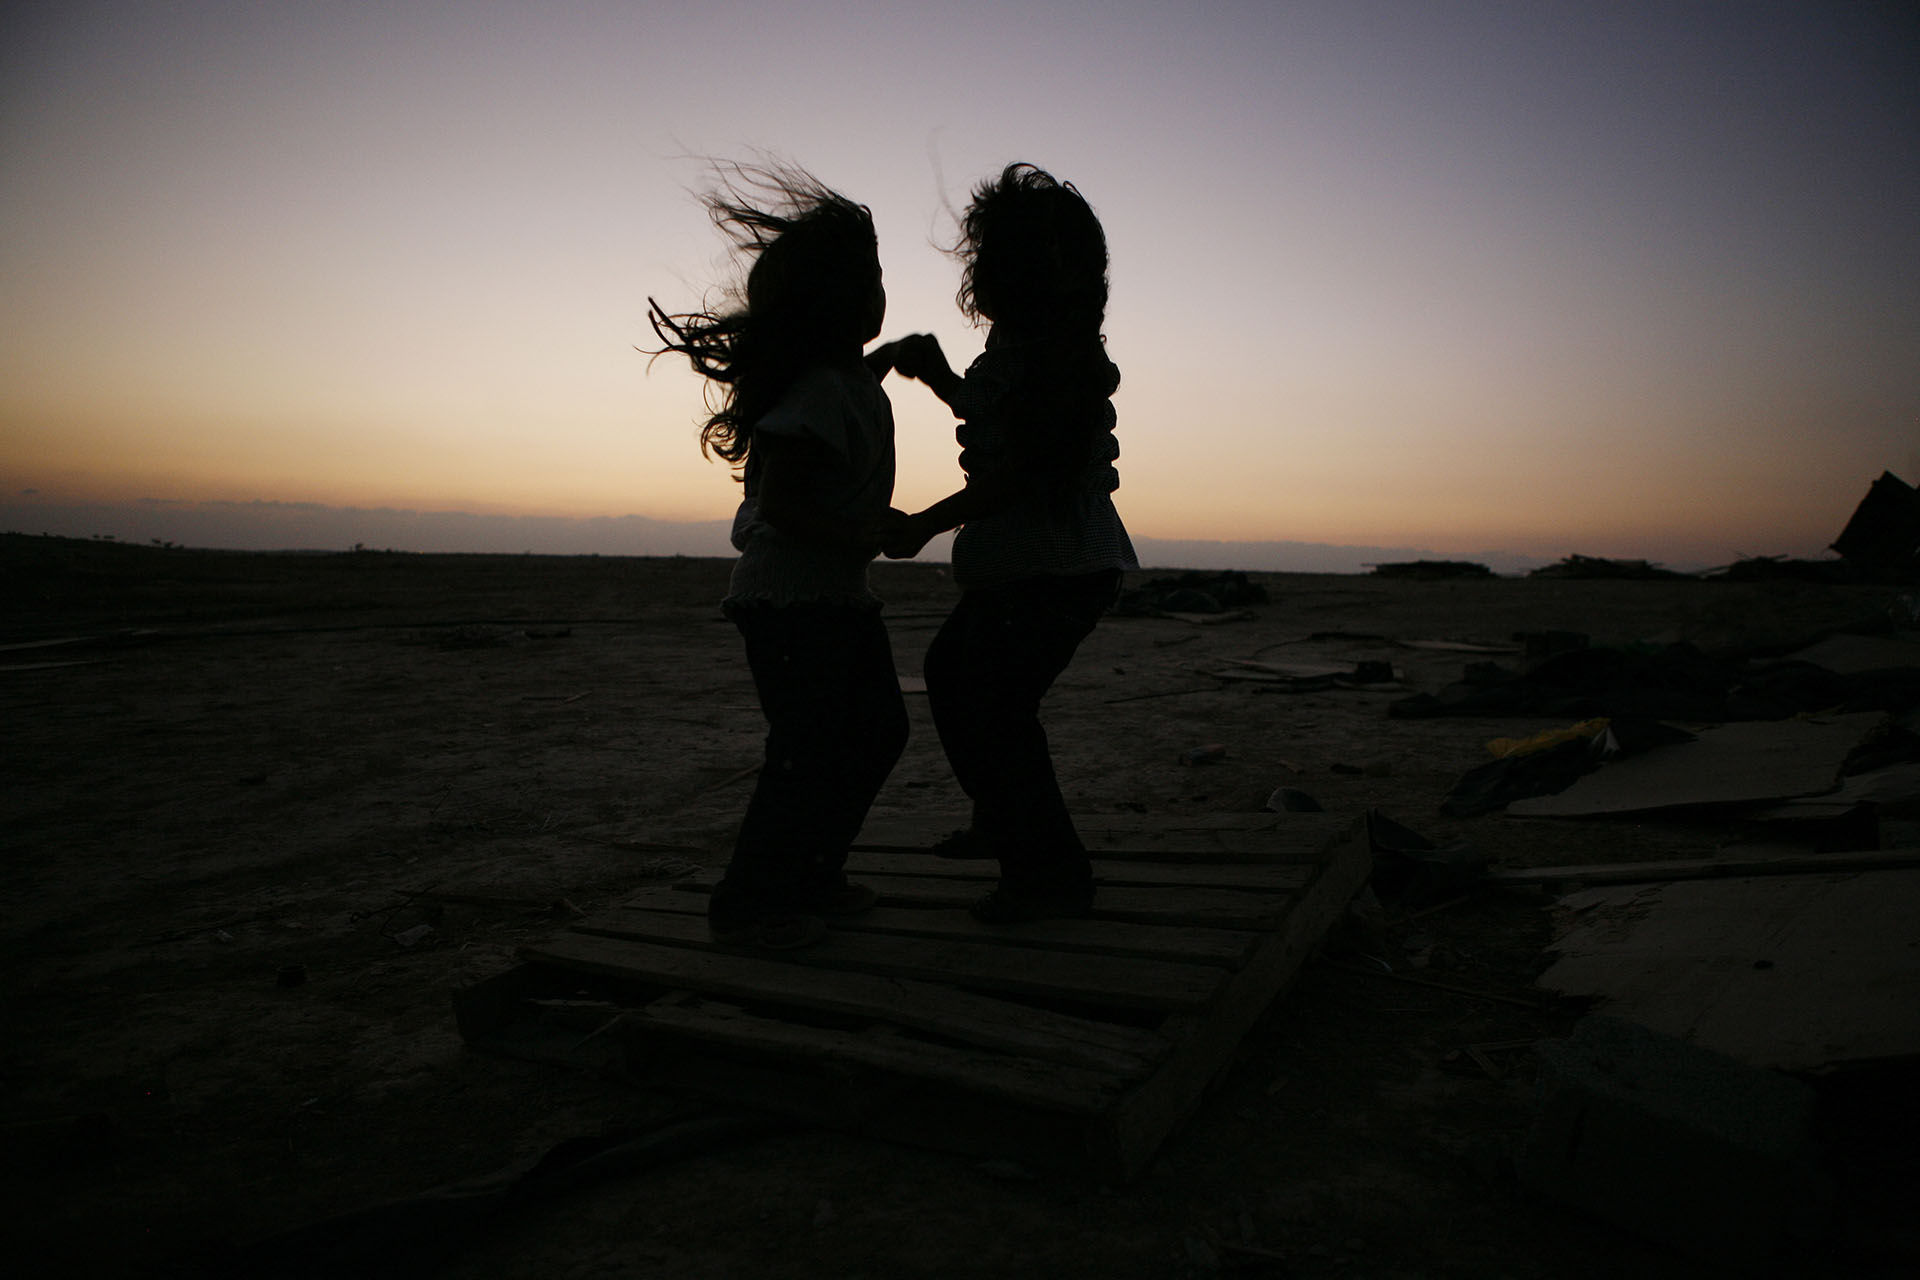 Girls dance against the sunset in Al Araqib. September 2010